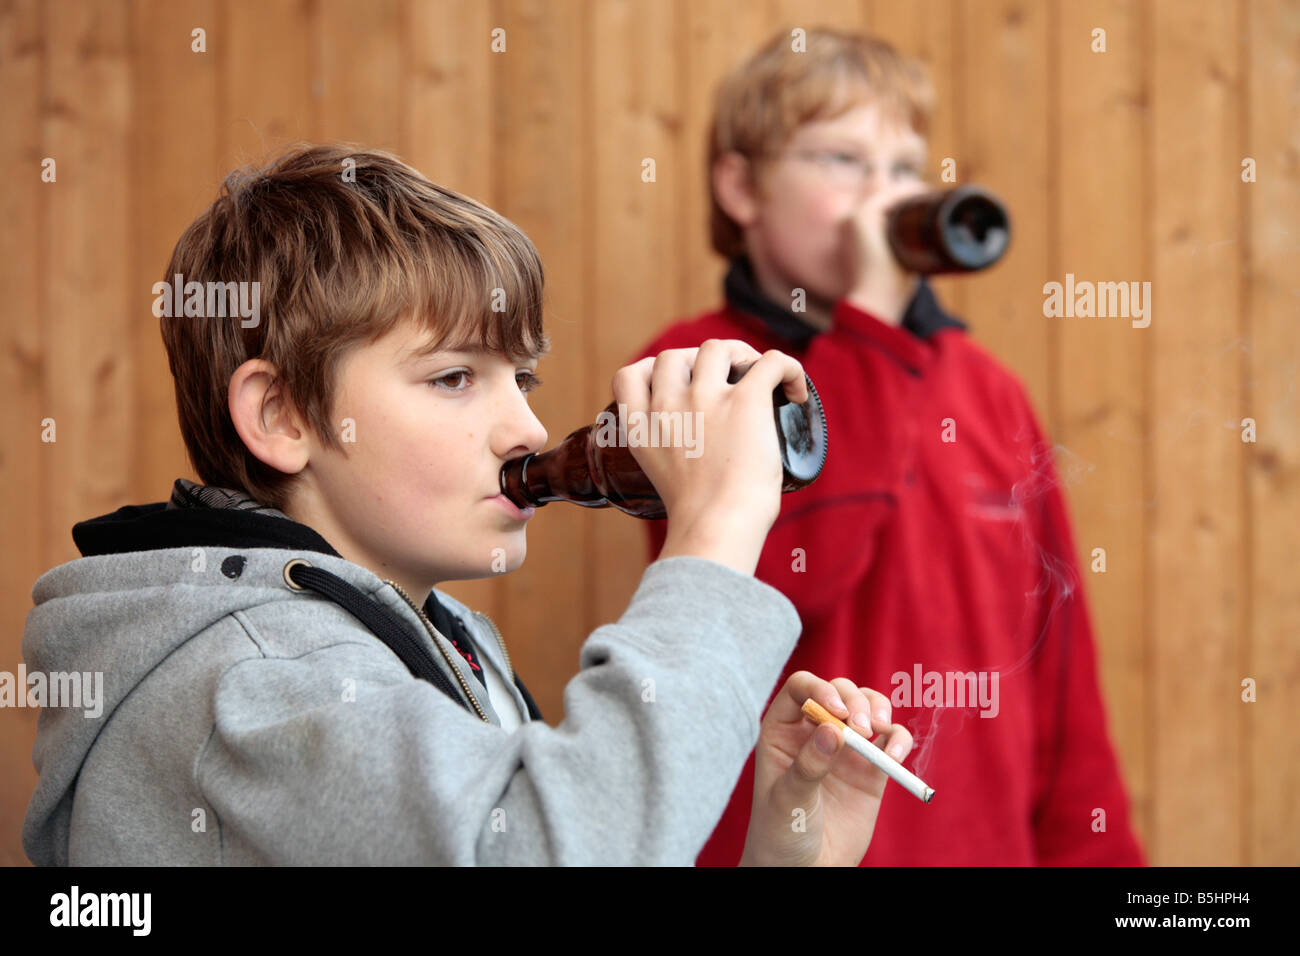 underage smoking ... Portrait of two underage boys smoking and drinking beer - Stock Photo